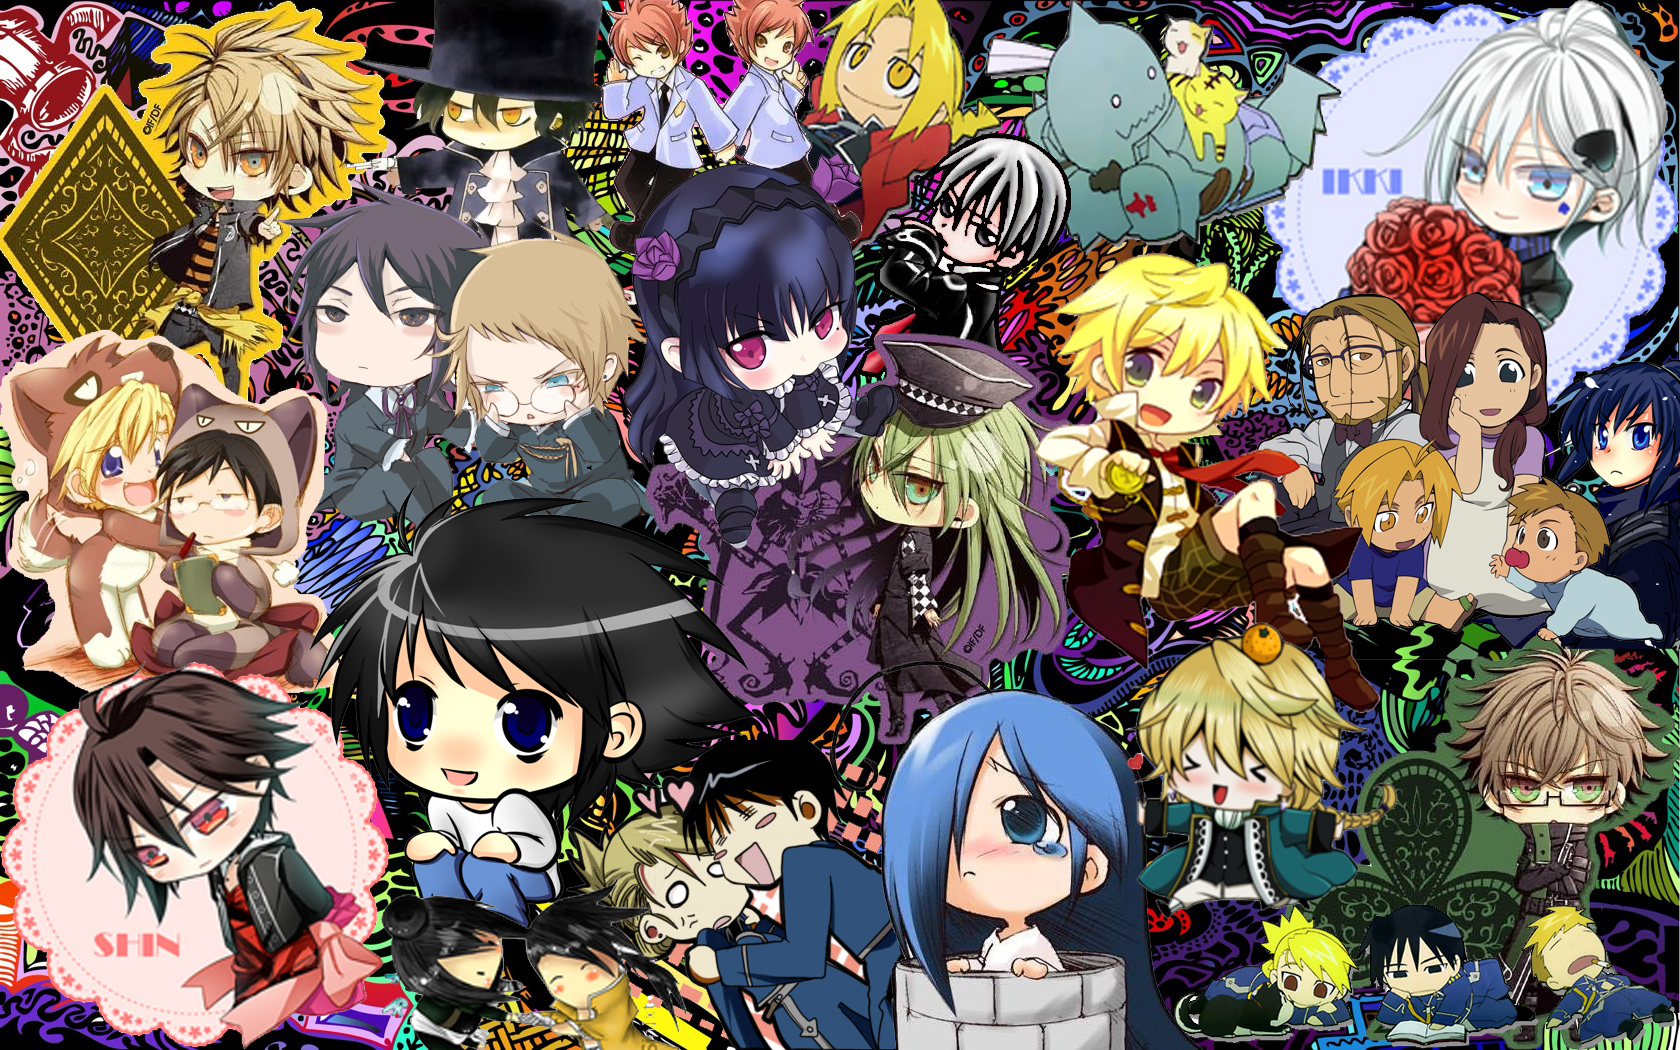 Noragami Hd Wallpaper Another Anime Collage L30 Bask3rvill3